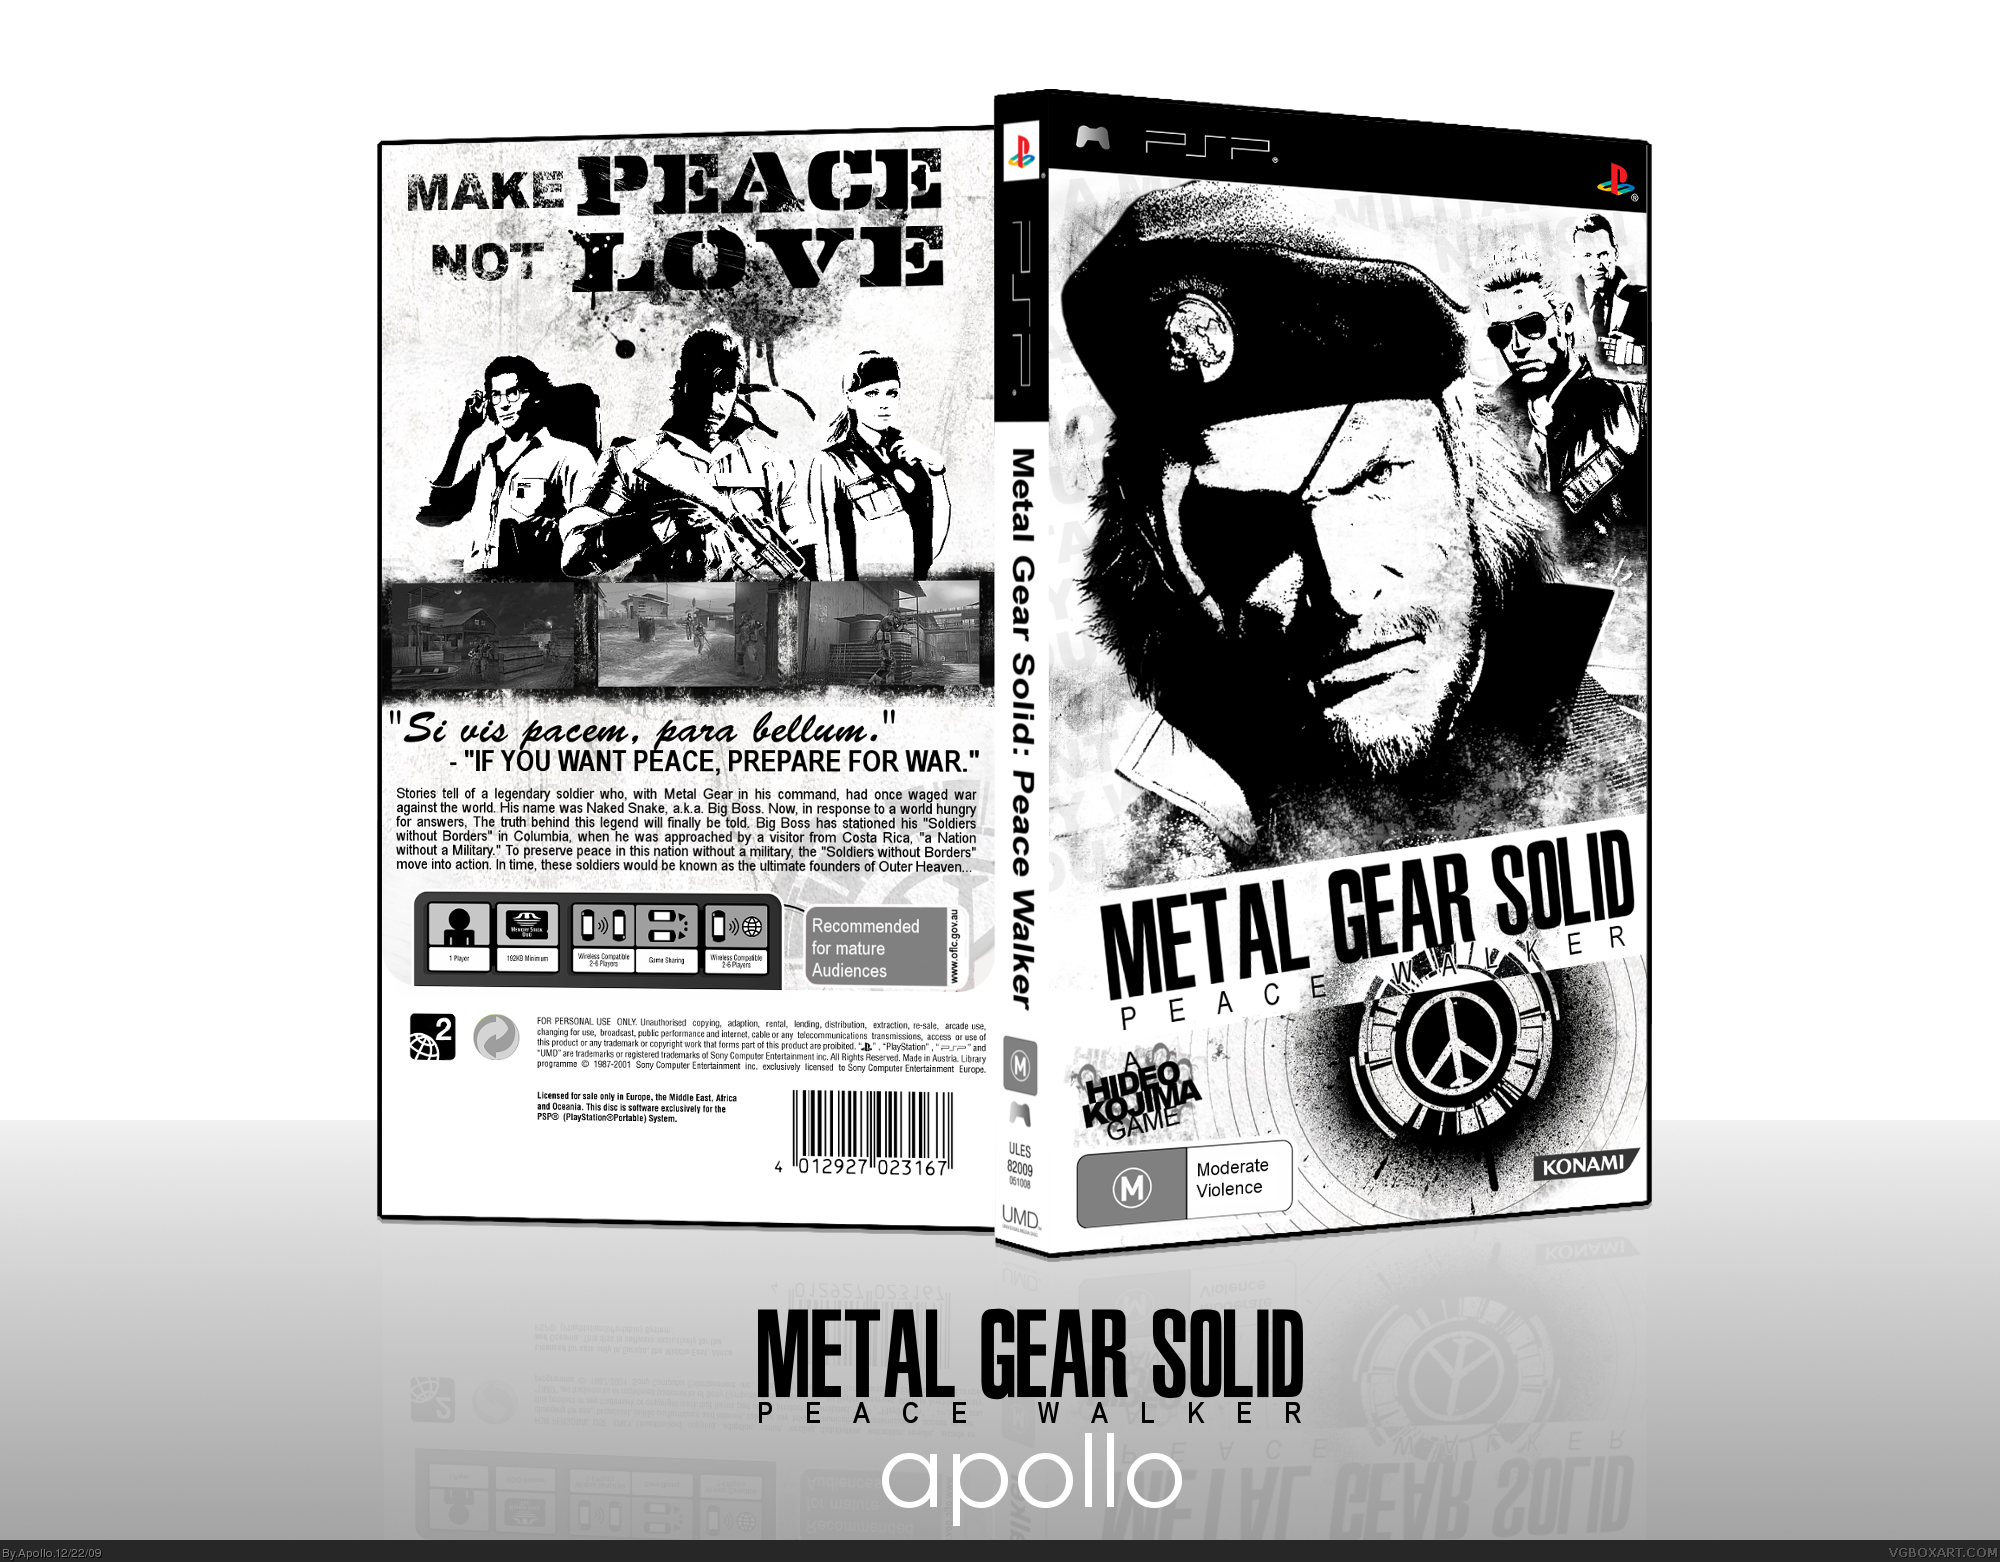 Metal Gear Solid: Peace Walker box cover